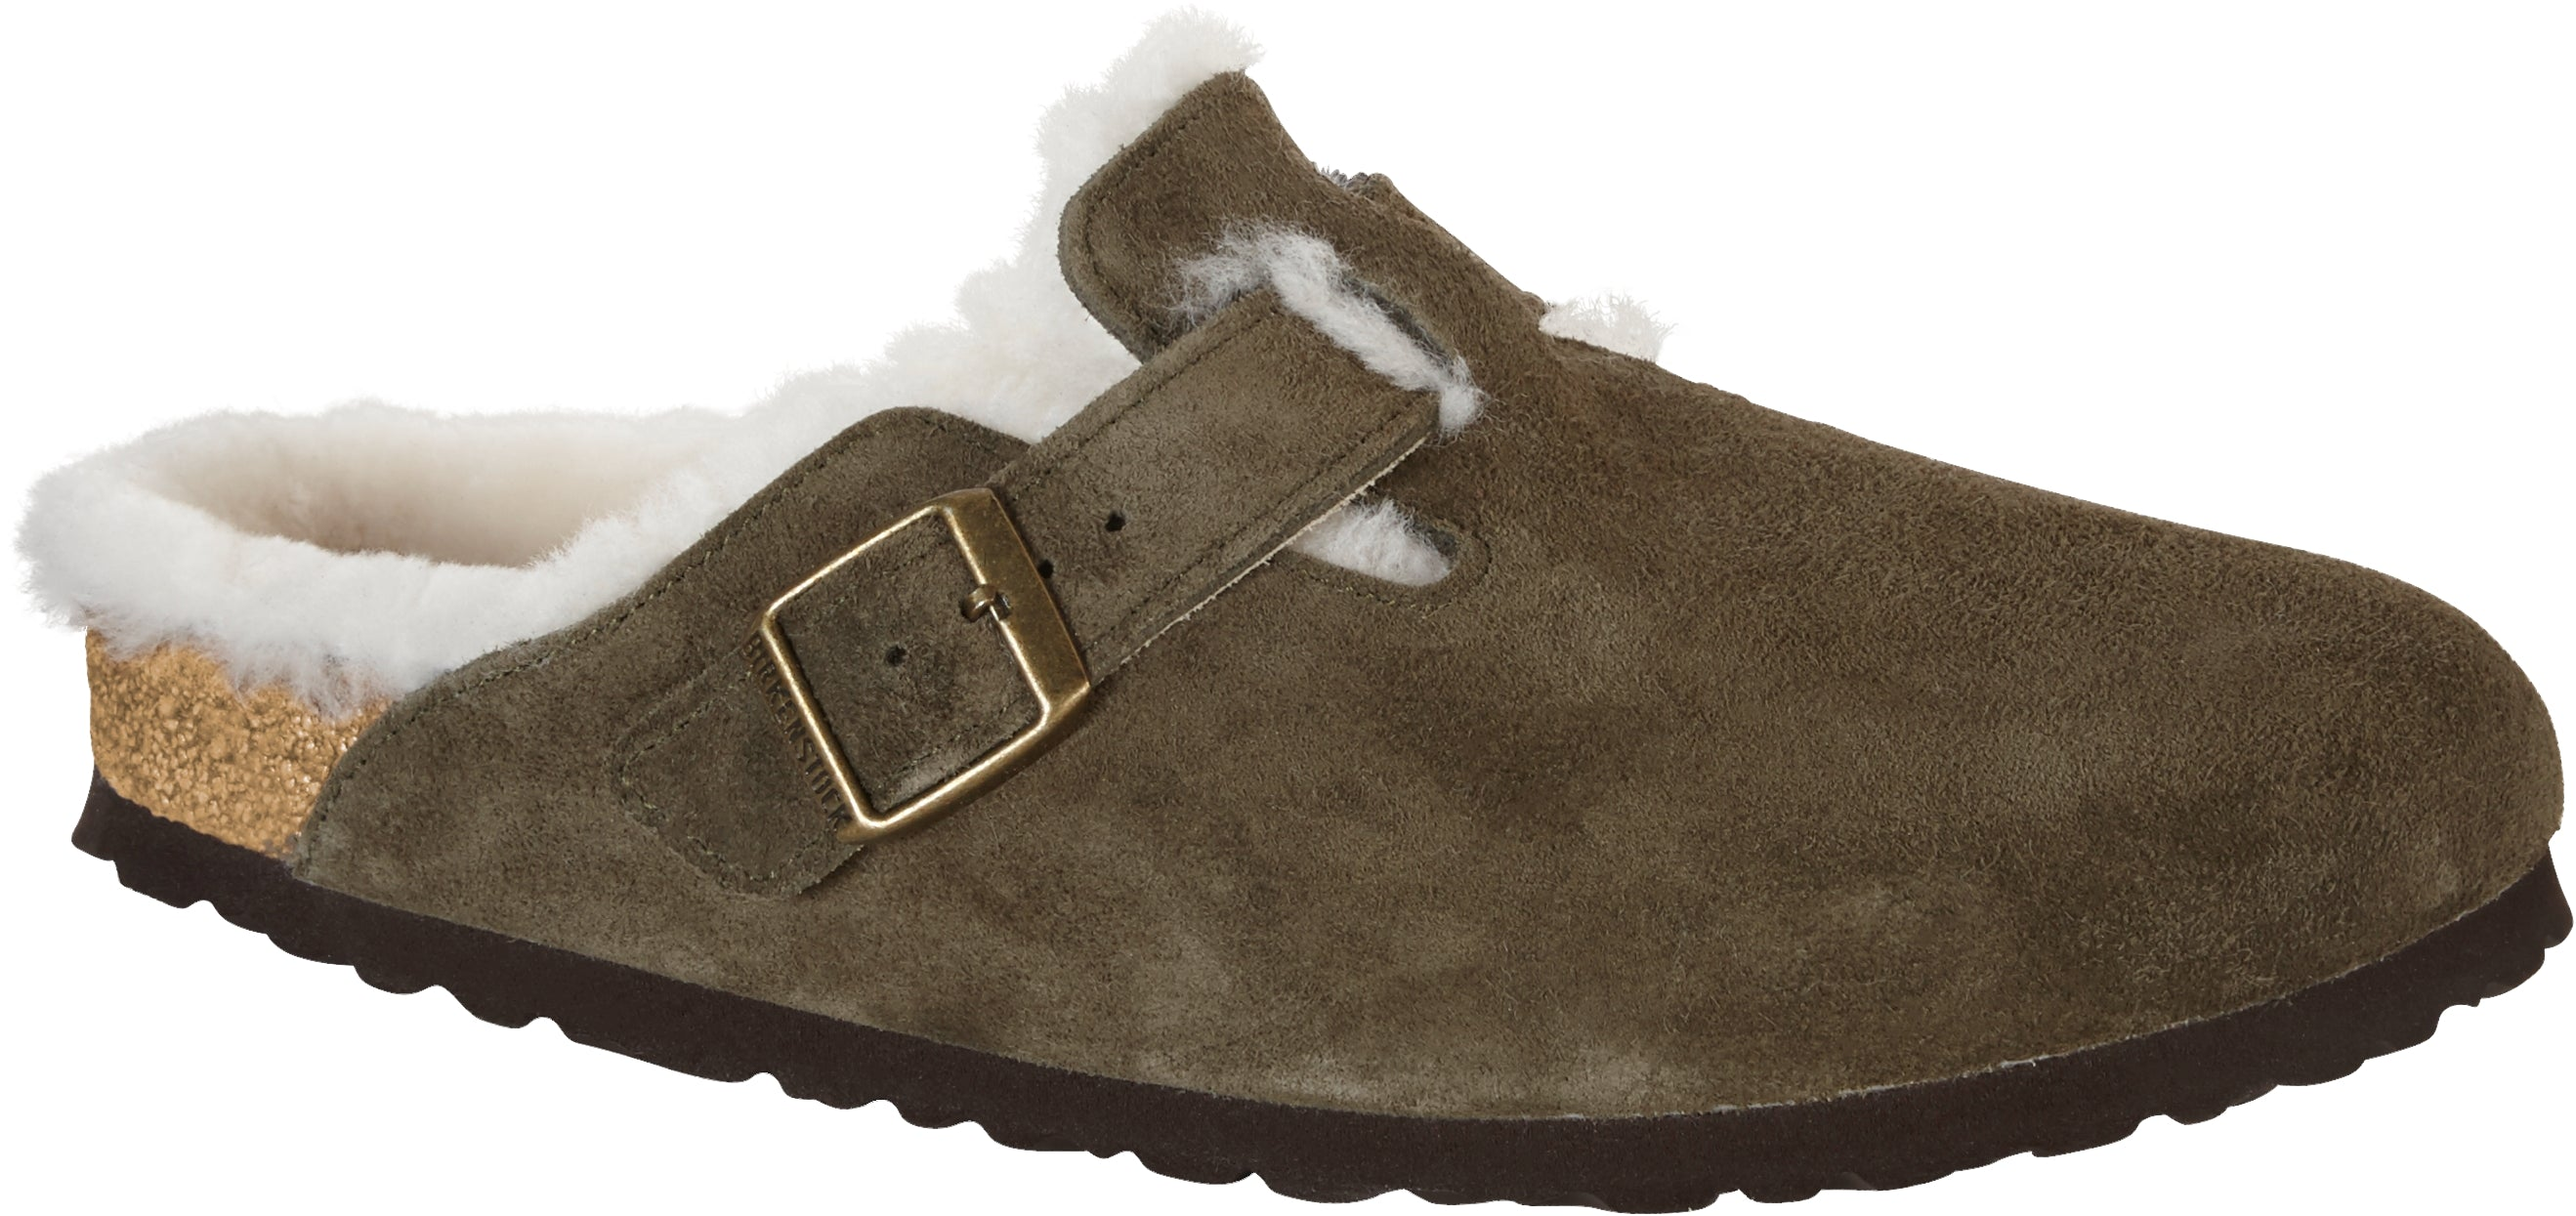 Boston - Forest Suede Shearling